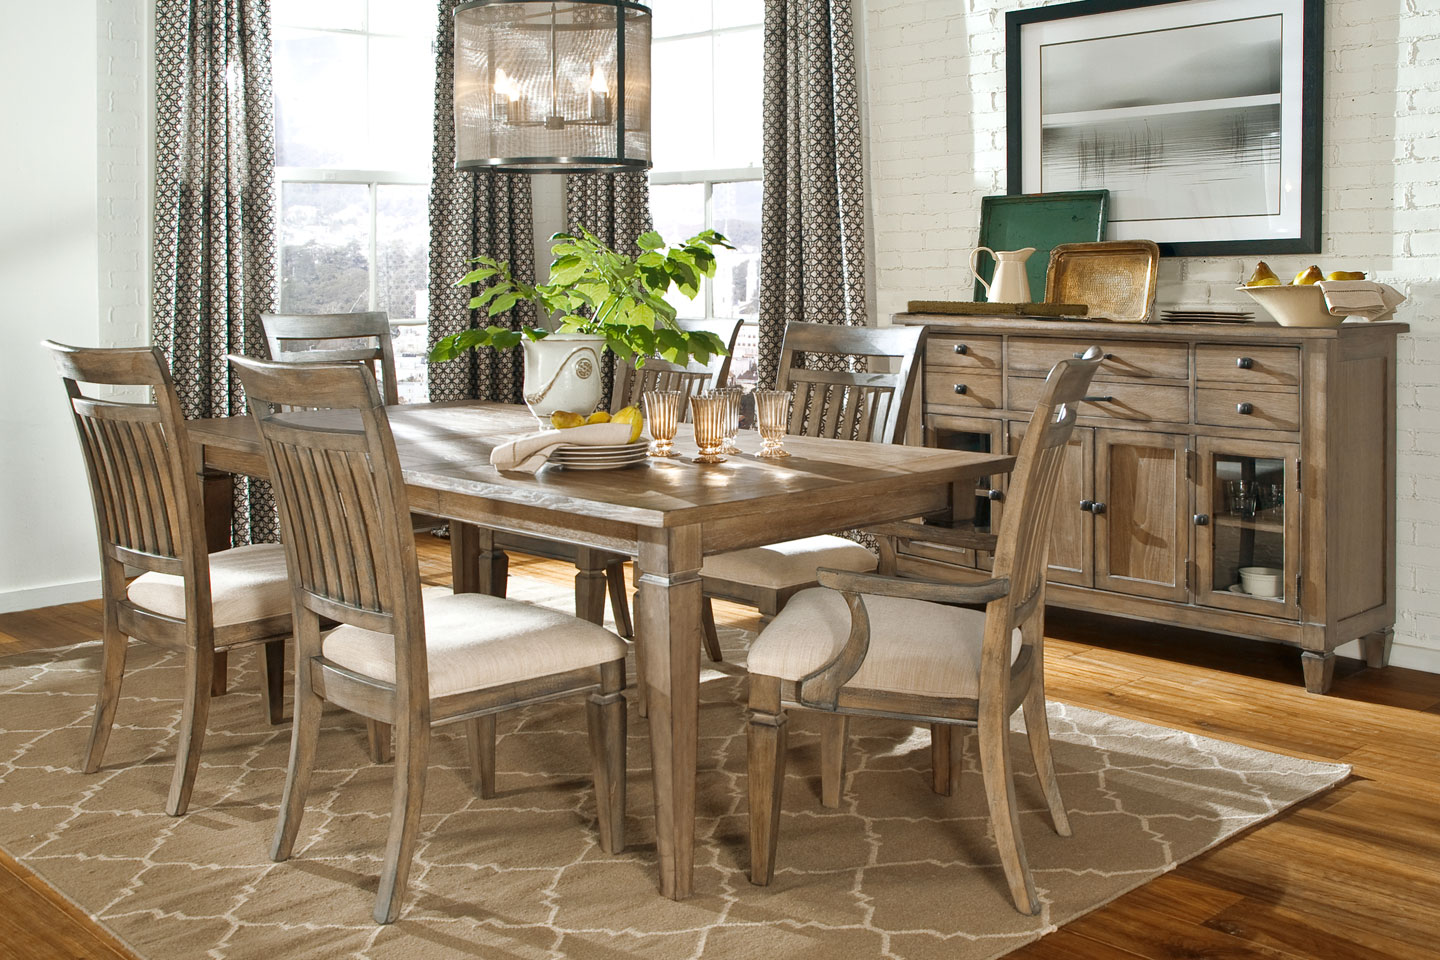 Gavin rustic formal dining room set fine dining furniture for Formal dining room furniture sets